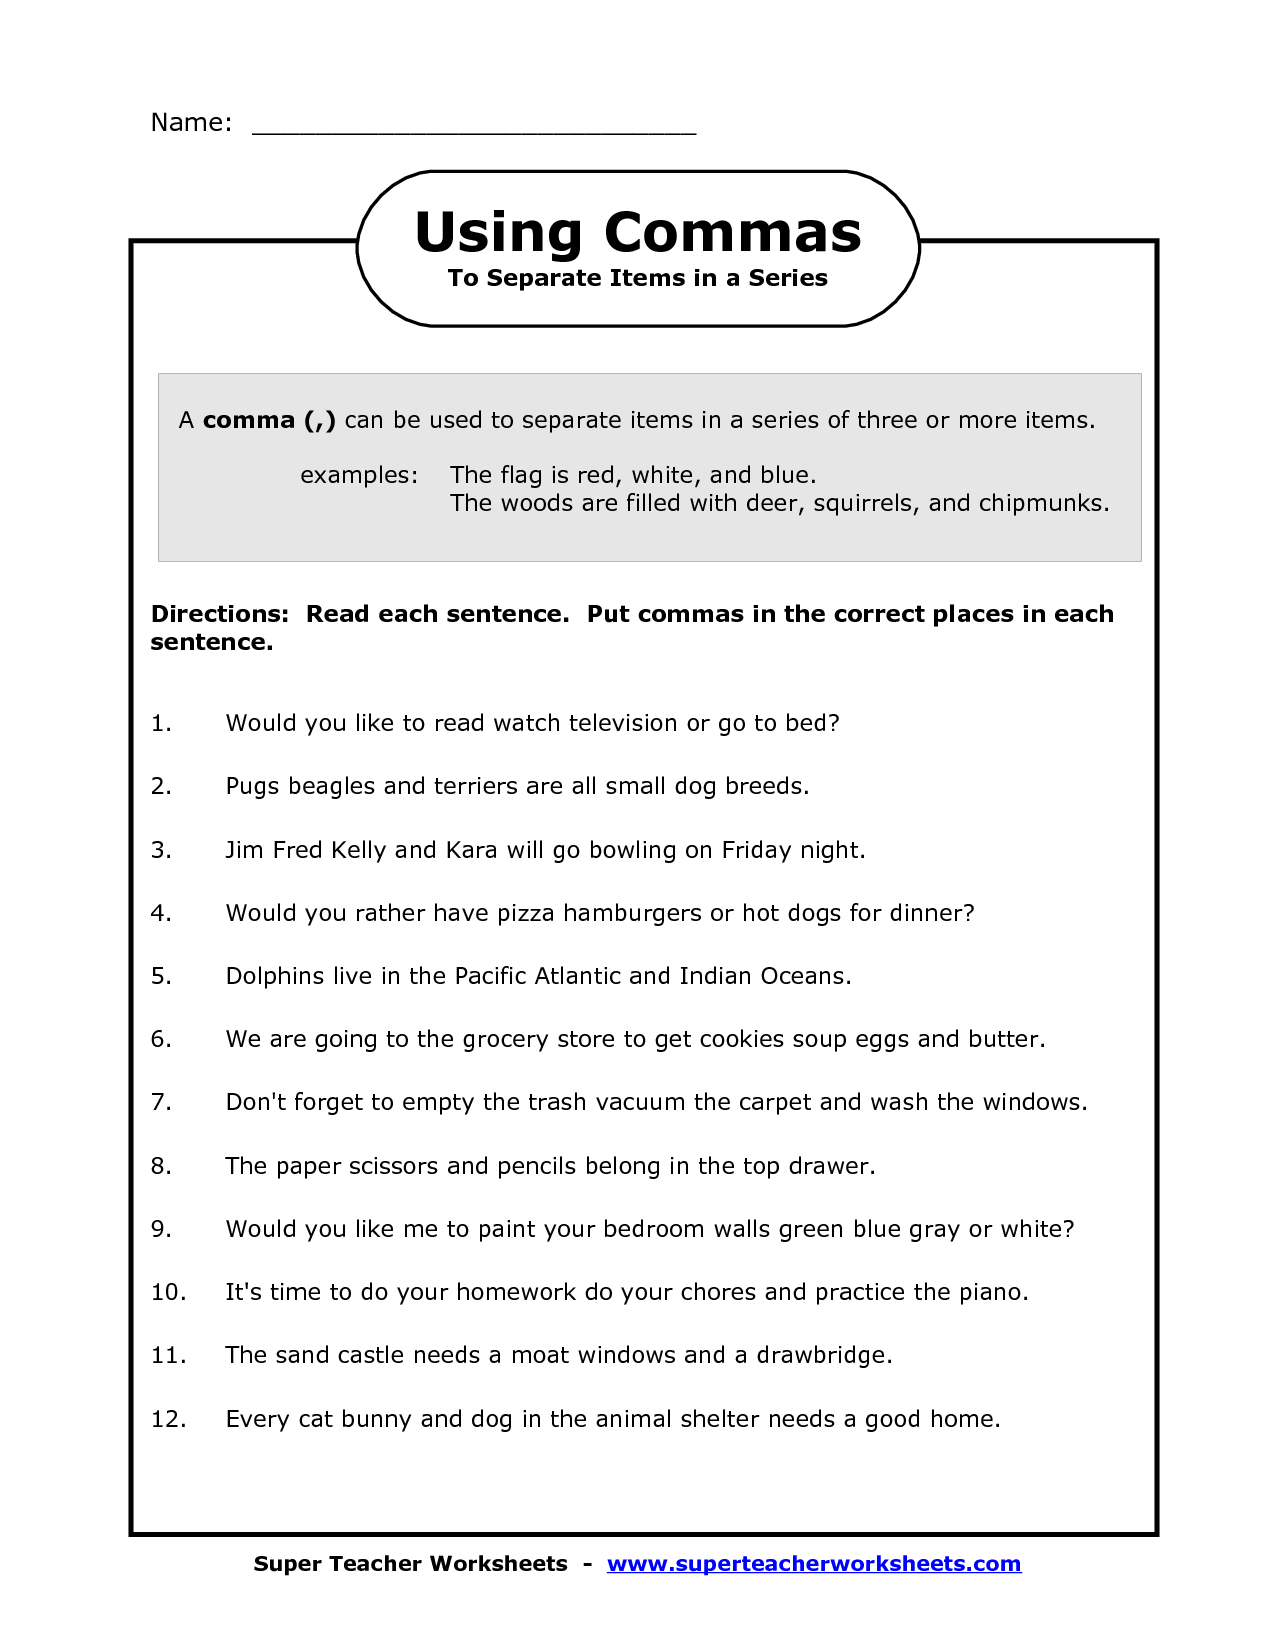 comma in a series worksheets image – Using Commas Worksheet